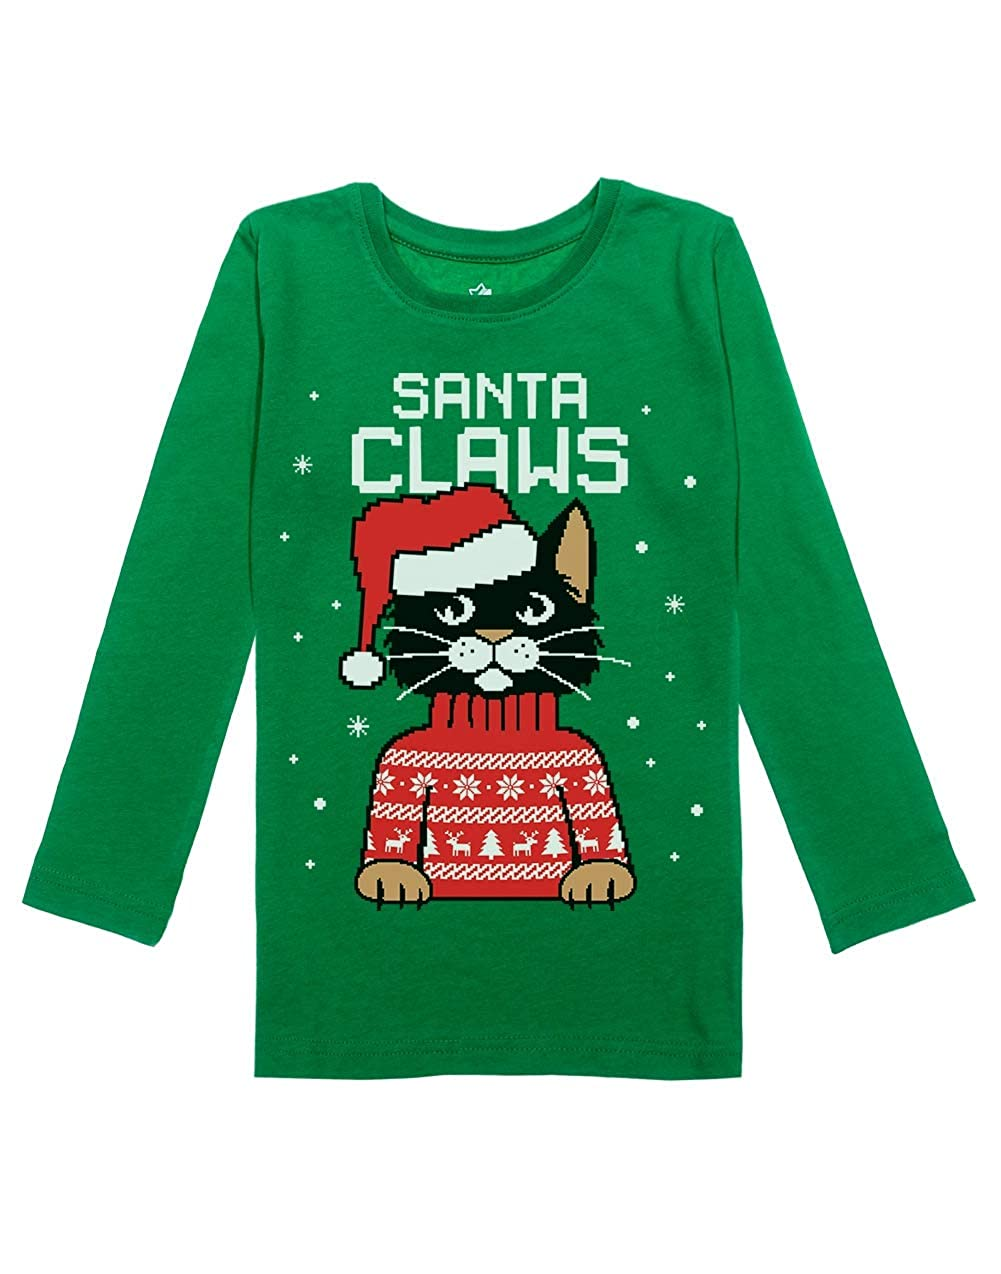 46fabc563354b3 Amazon.com: Santa Claws Cat Ugly Christmas Sweater Girls Toddler Long  Sleeve Fitted T-Shirt: Clothing